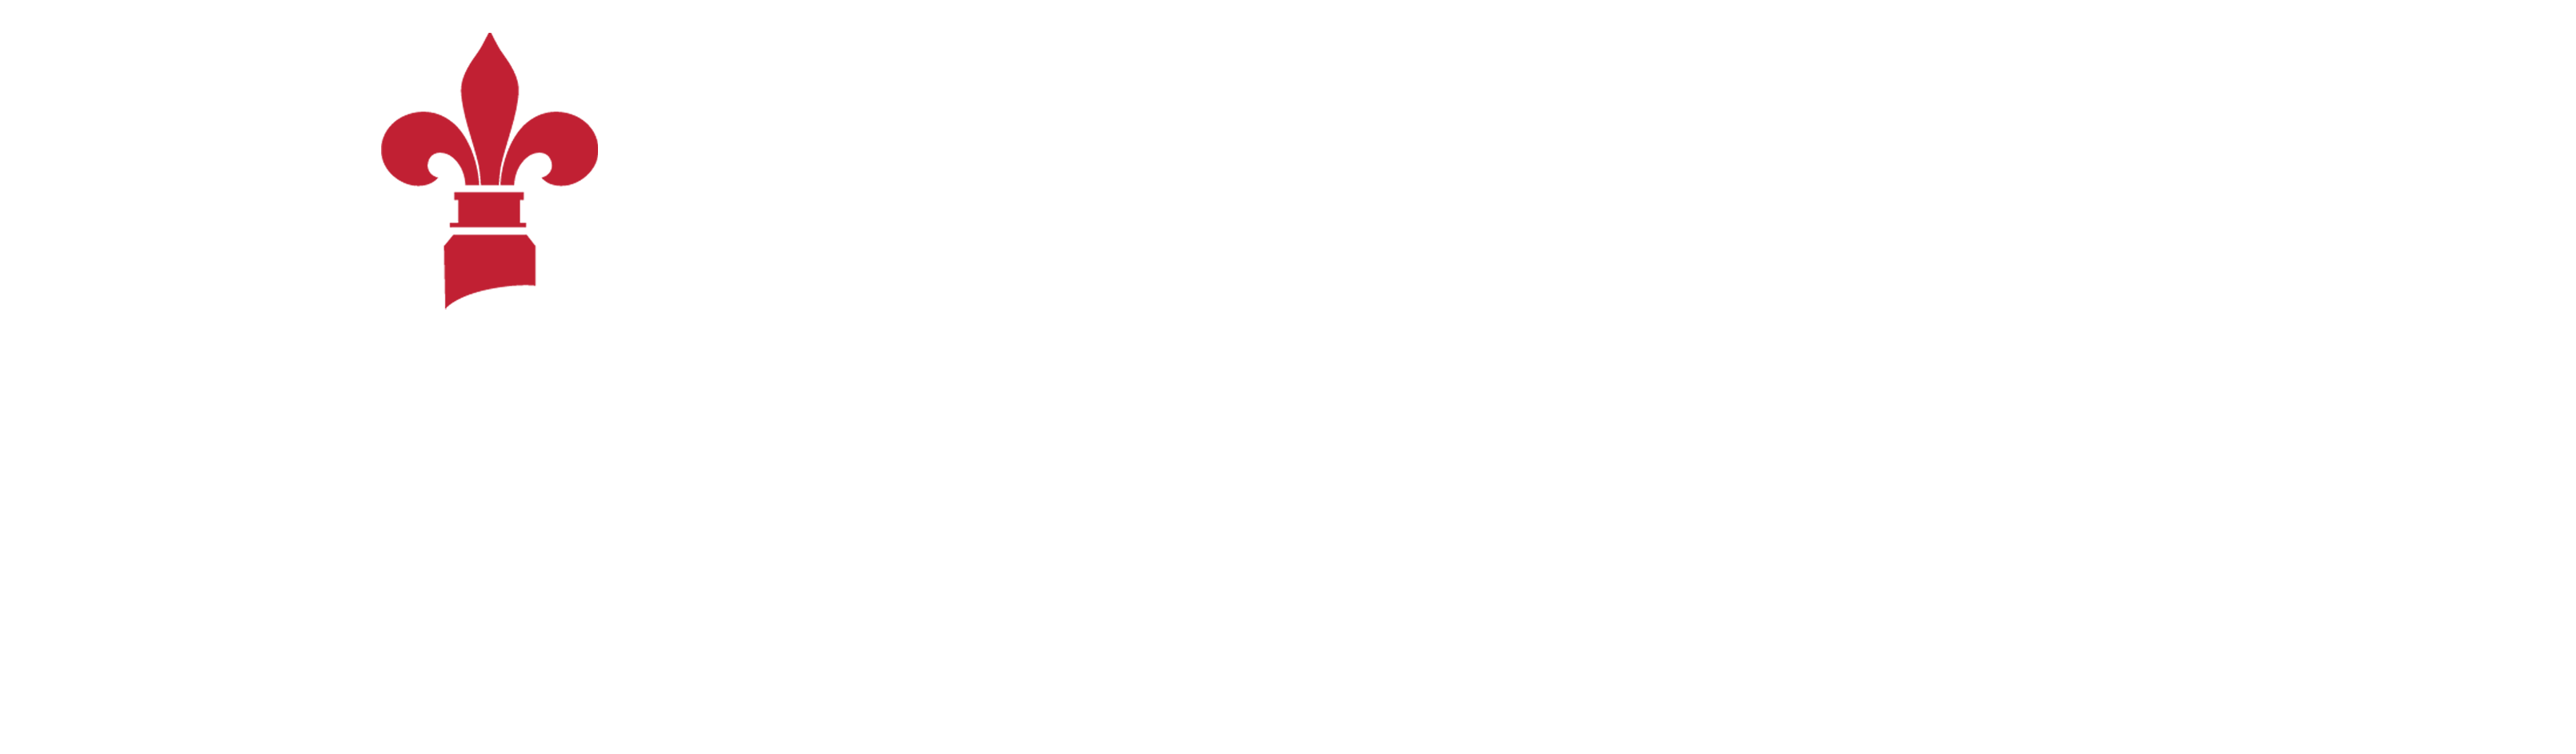 Online Banking - City Bank & Trust Company - Natchitoches, La